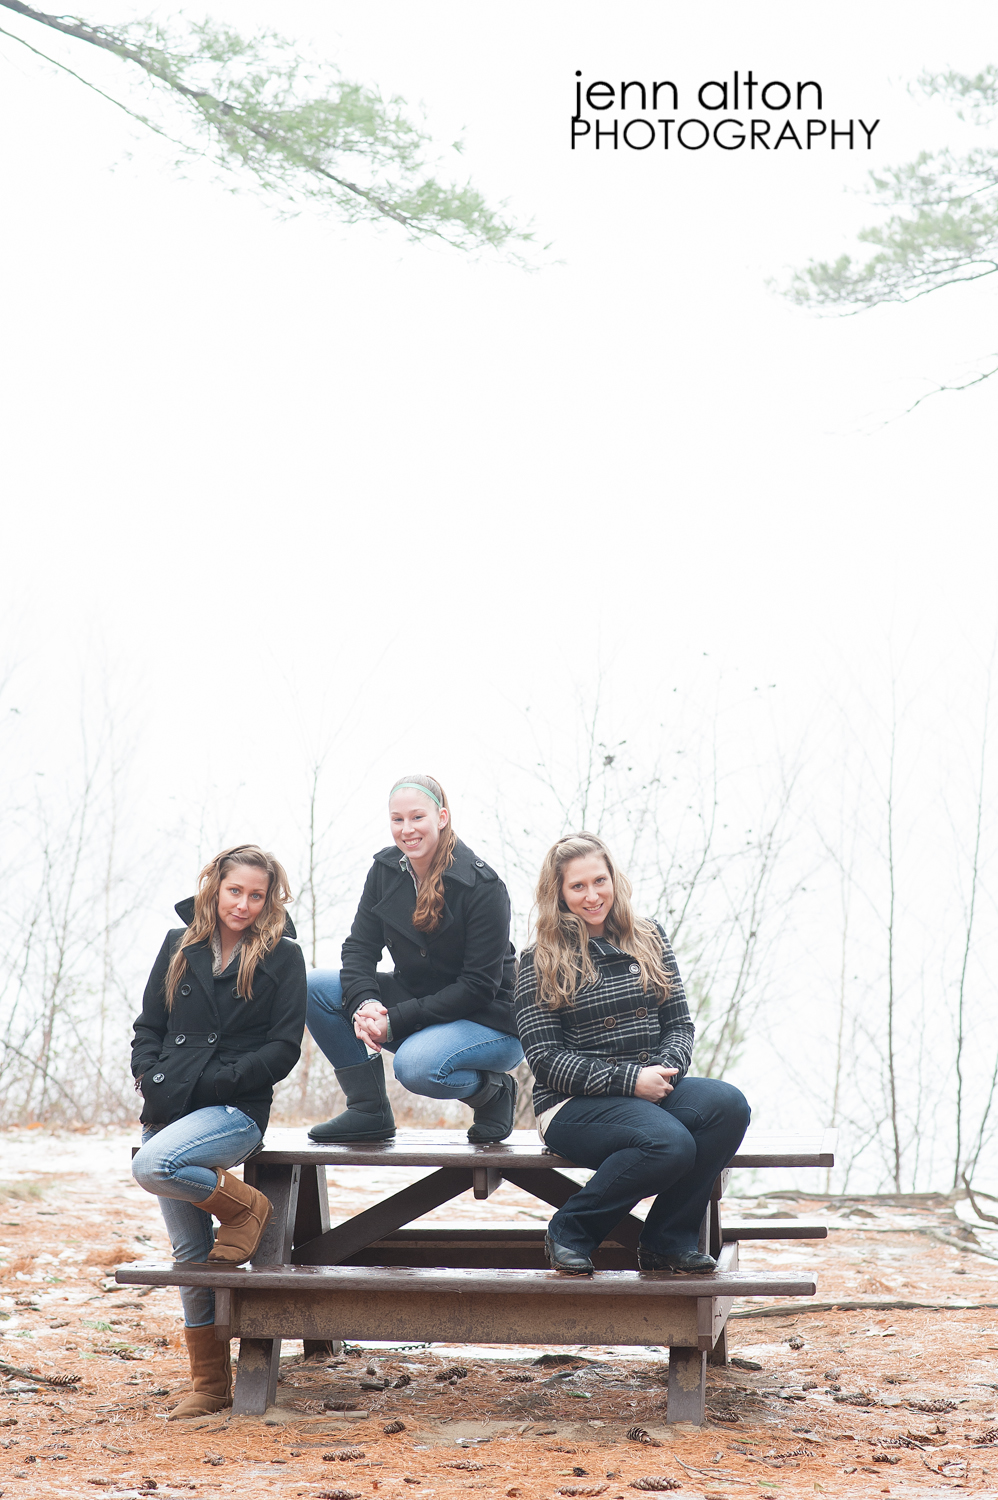 Three sisters outdoor portrait pose, Maudsley Park, Newburyport, MA picnic table